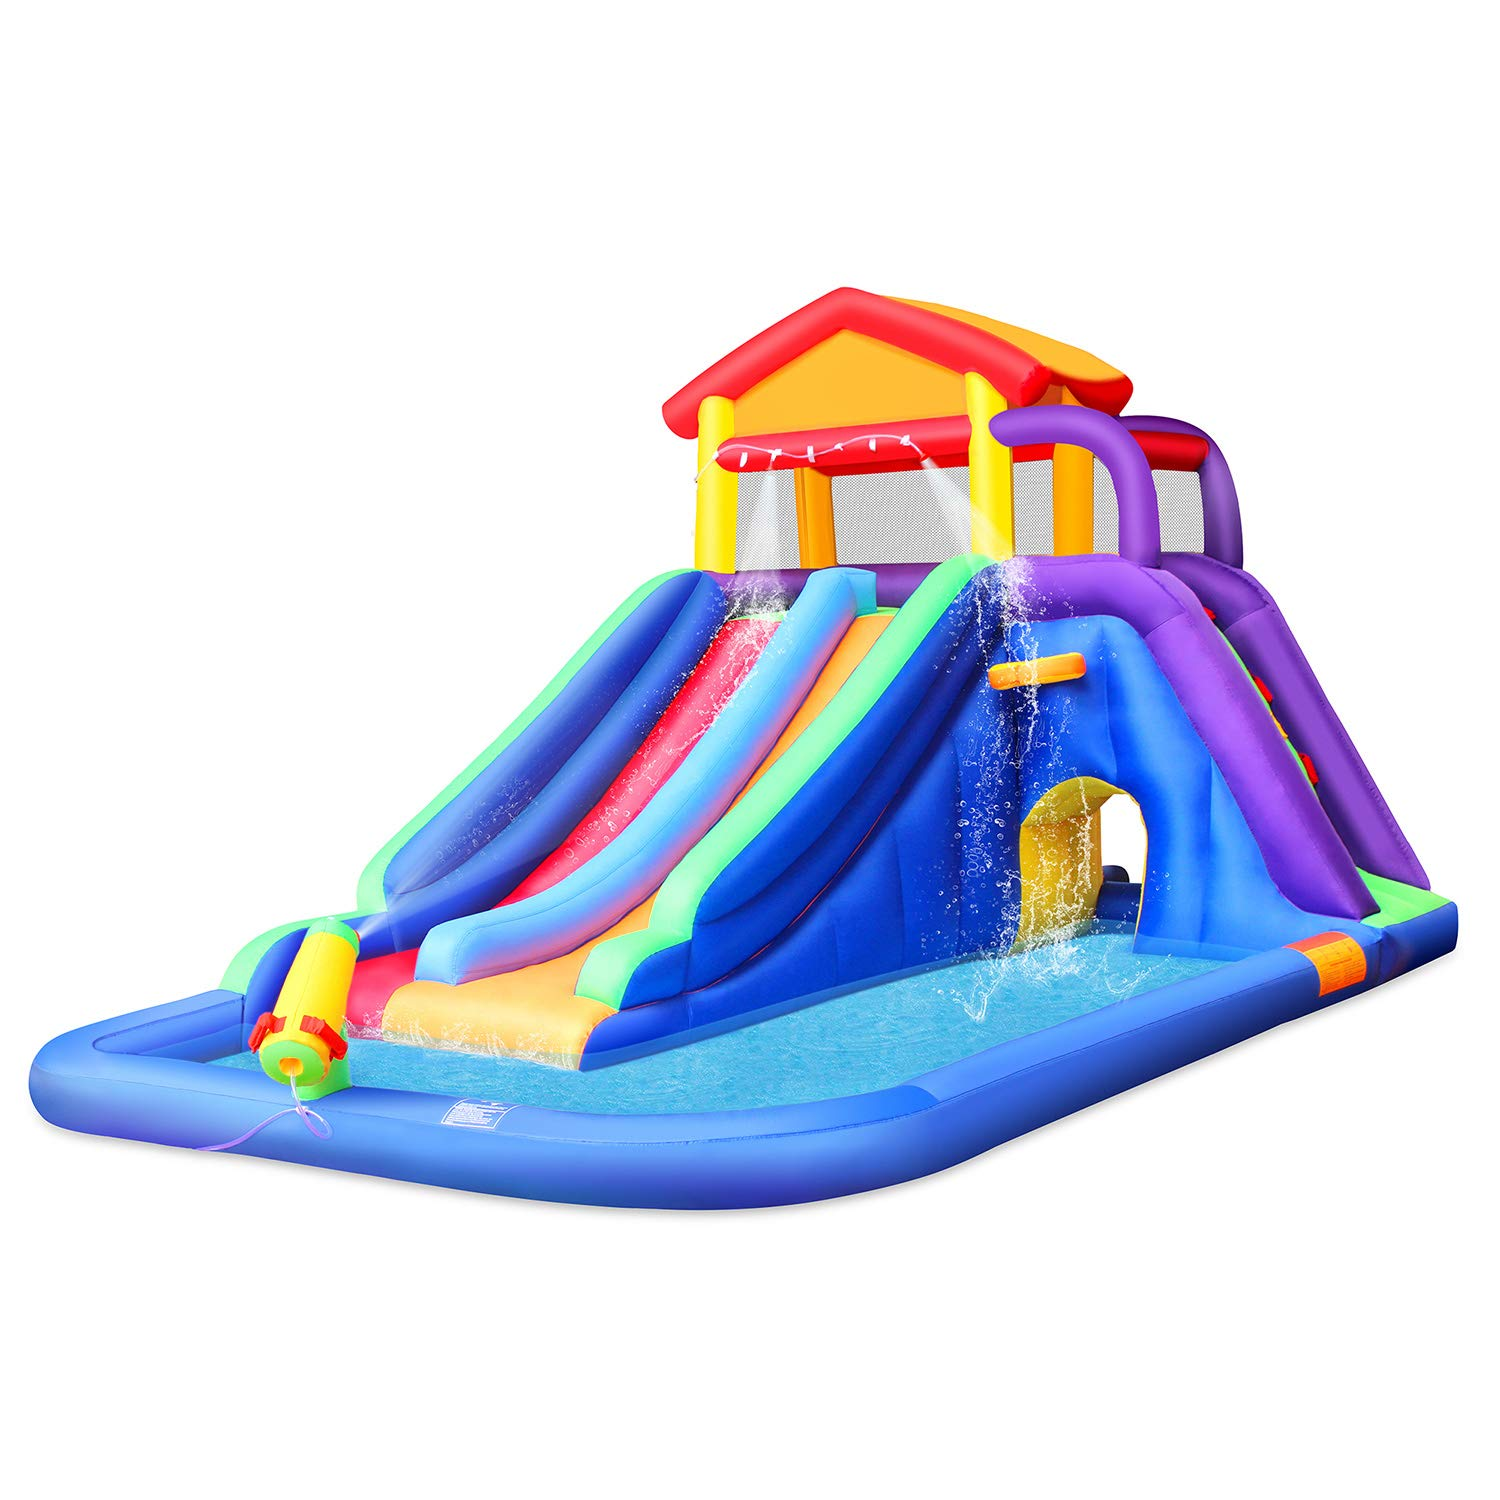 BestParty Inflatable Kids Water Slide, Pool Water Slide for Toddler, Bouncy Splash Park for Outdoor Fun, with Blower by BestParty